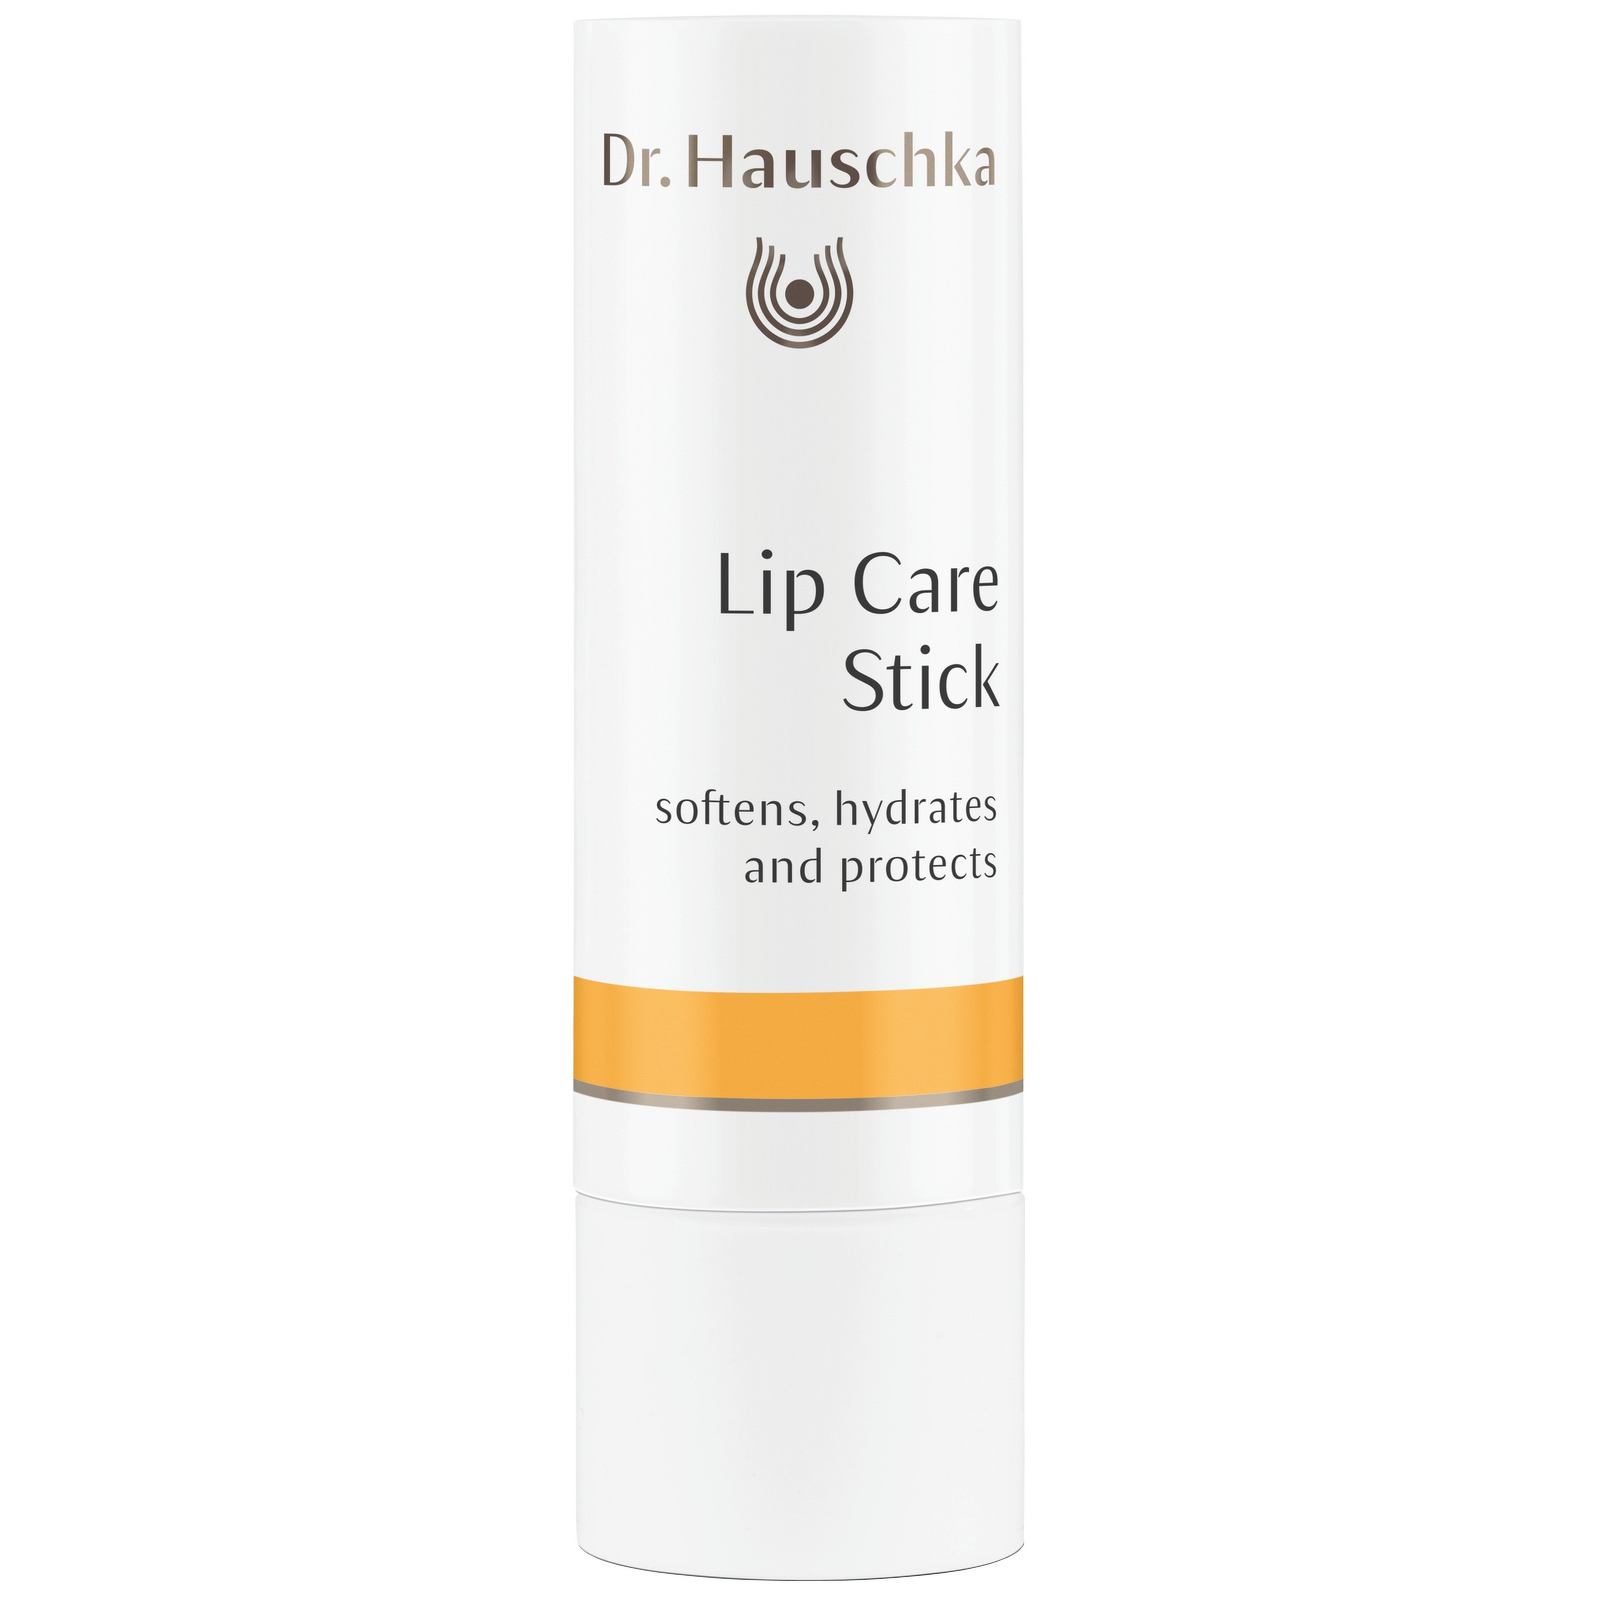 Dr. Hauschka Face Care Lip Care Stick 4.2g